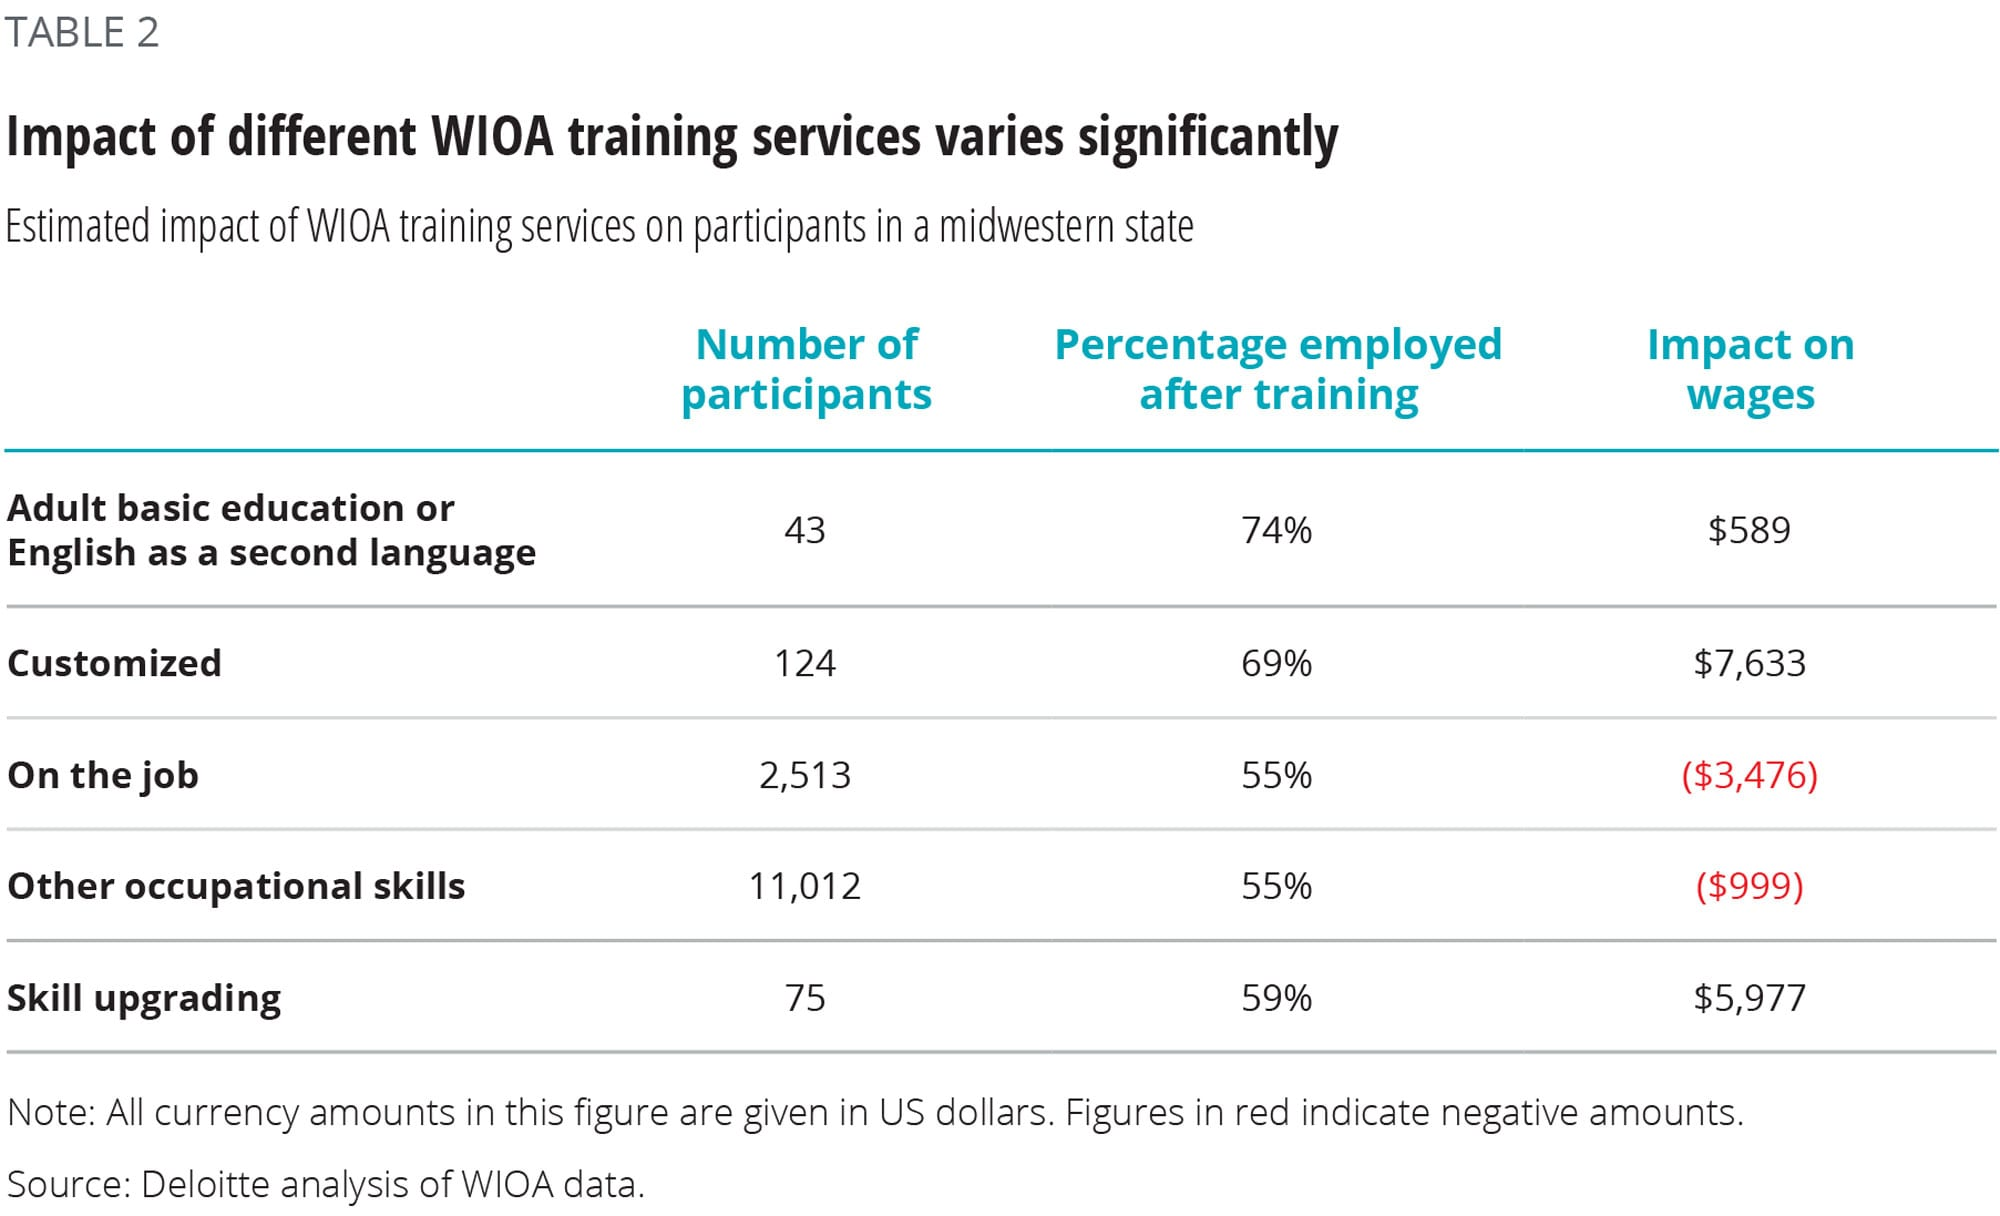 Impact of different WIOA training services varies significantly